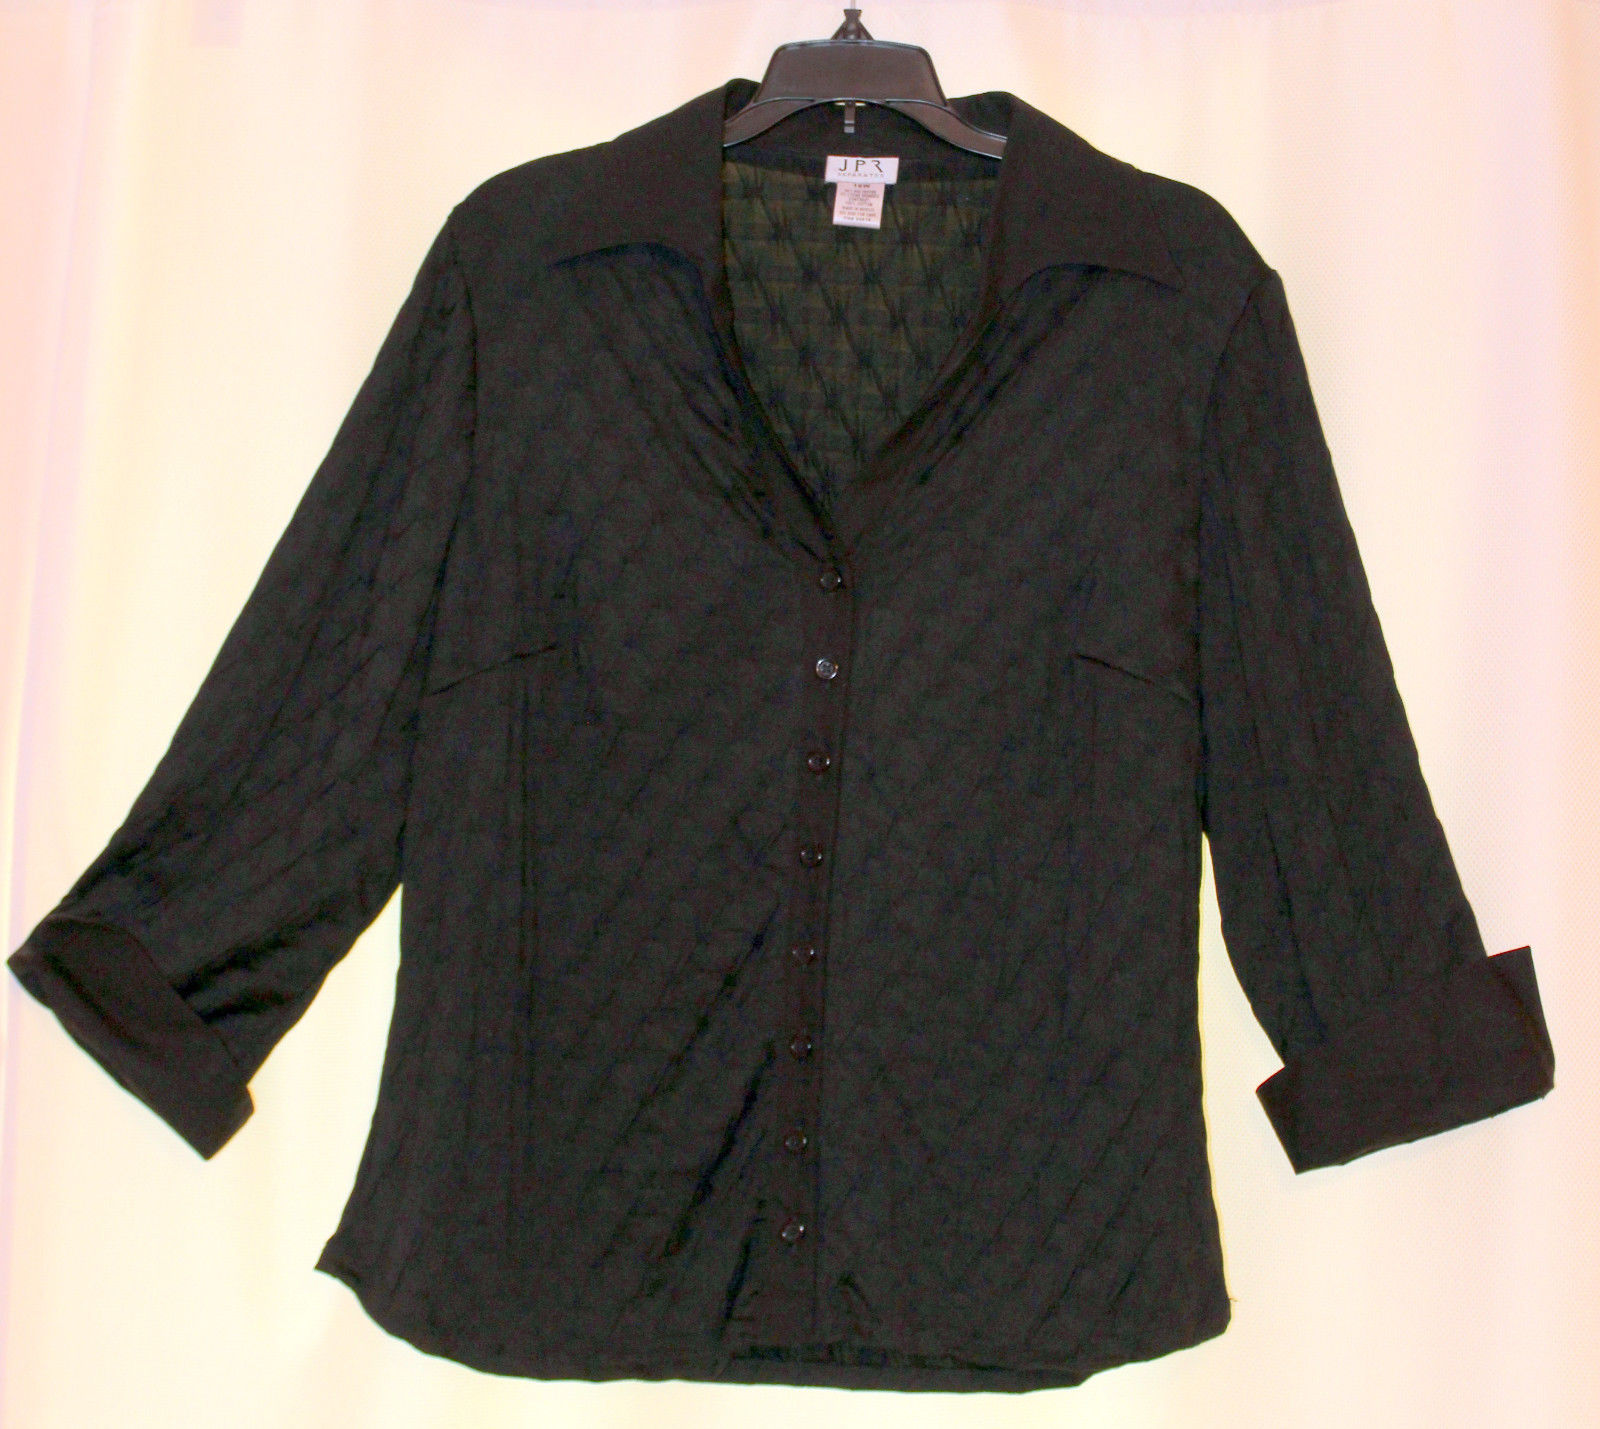 Primary image for JPR BLACK DIAMONDS TOP BLOUSE BUTTON DOWN SHIRT 3/4 SLEEVES CUFFS CAREER 16W 1X